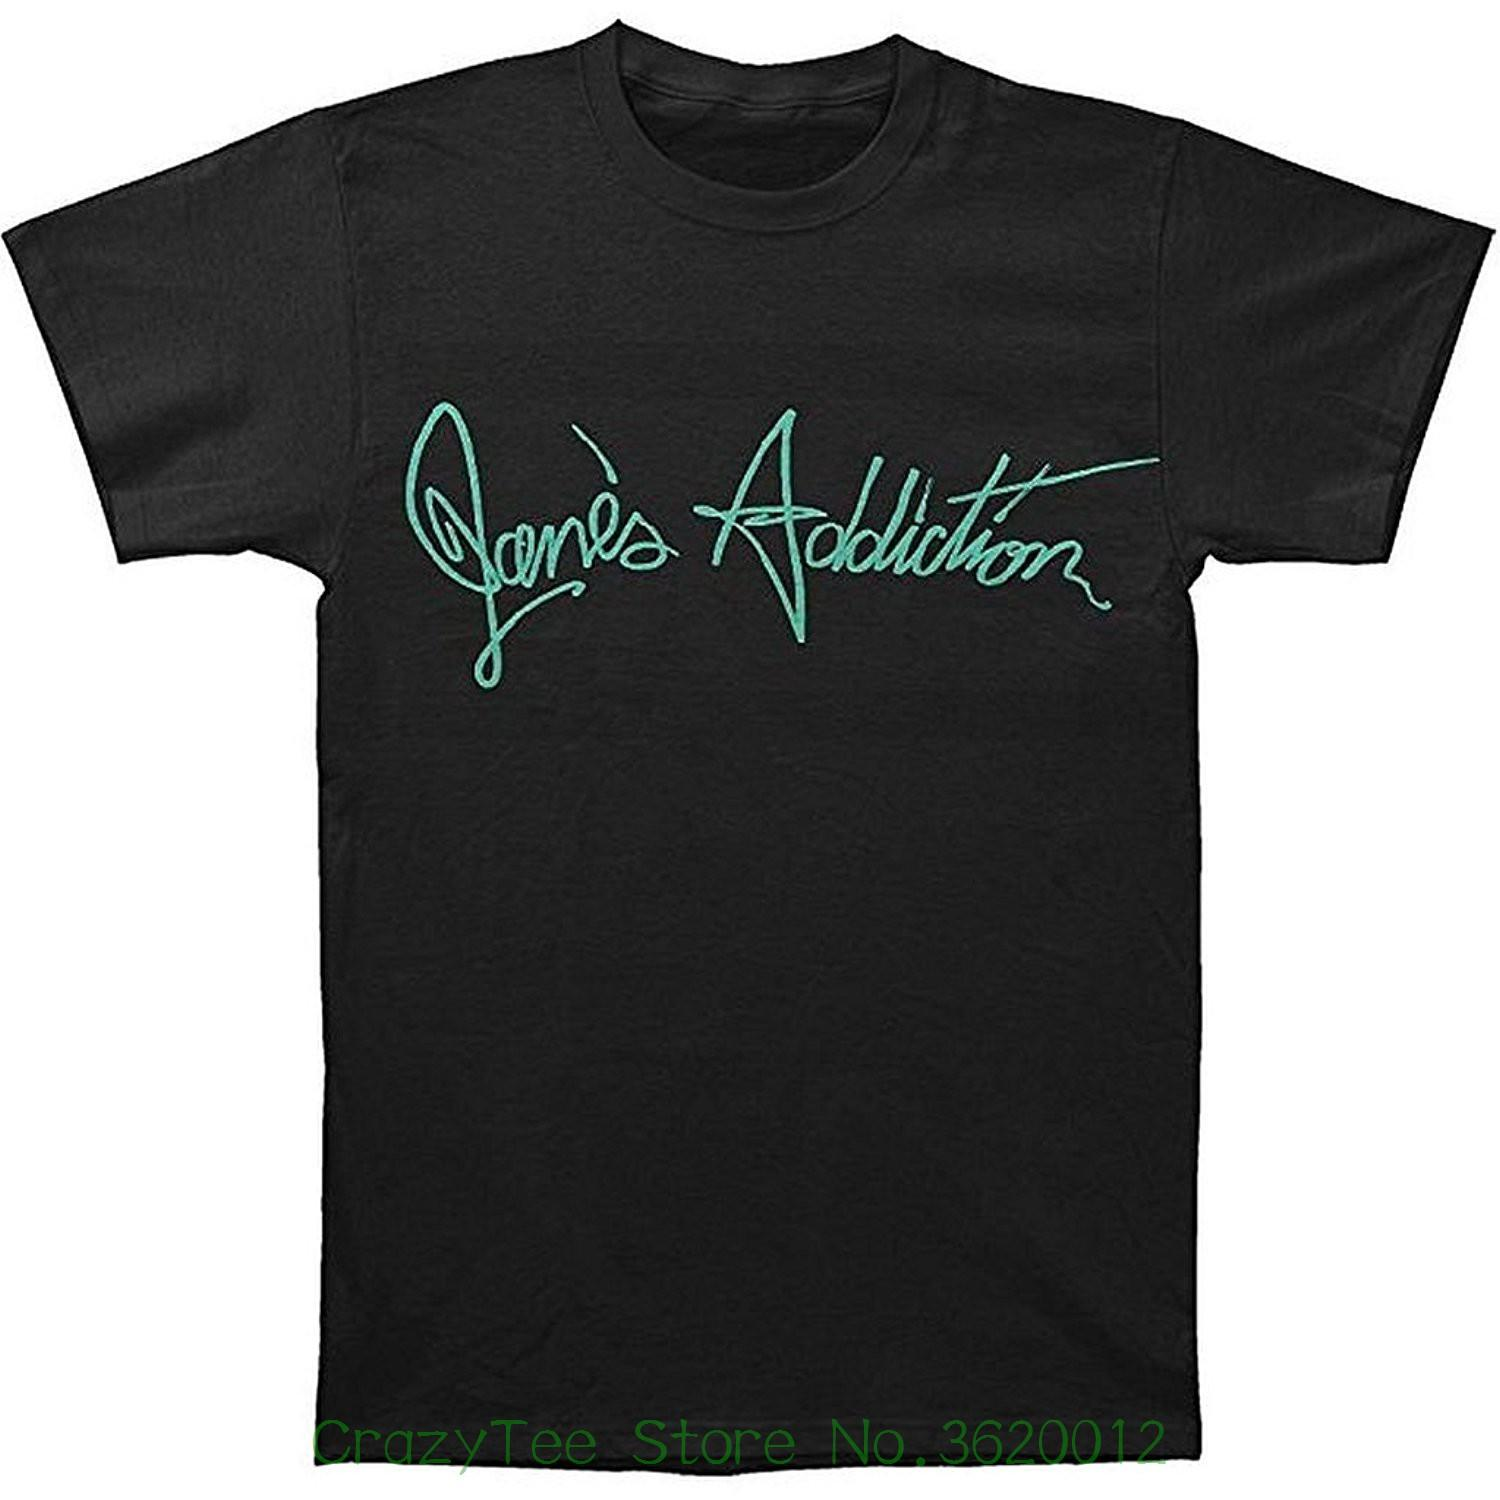 2b3ab8dae Short Sleeves New Fashion T-shirt Men Clothing Jane's Addiction ...